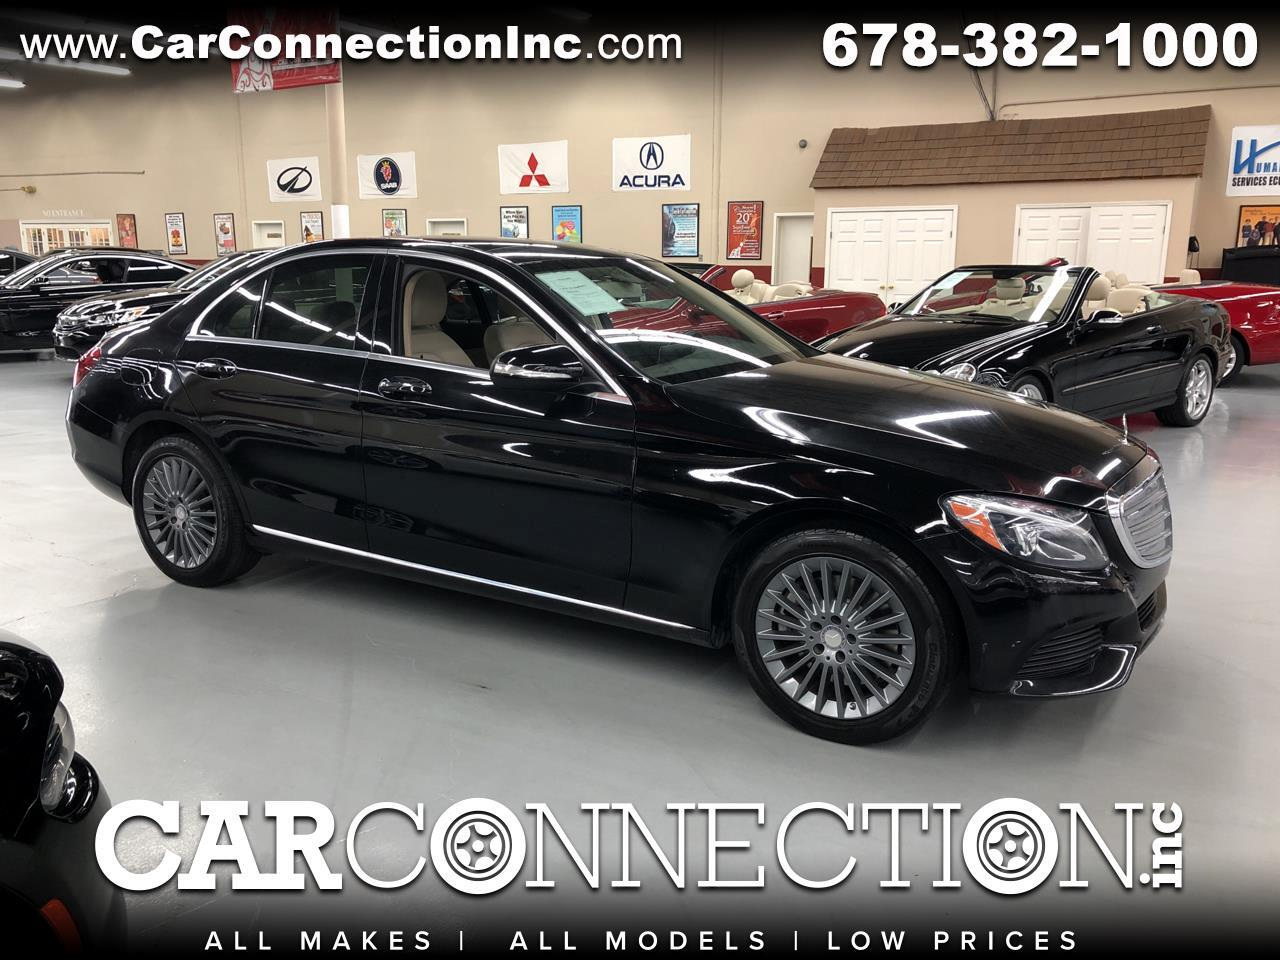 2015 Mercedes-Benz C-Class C300 Luxury Sedan